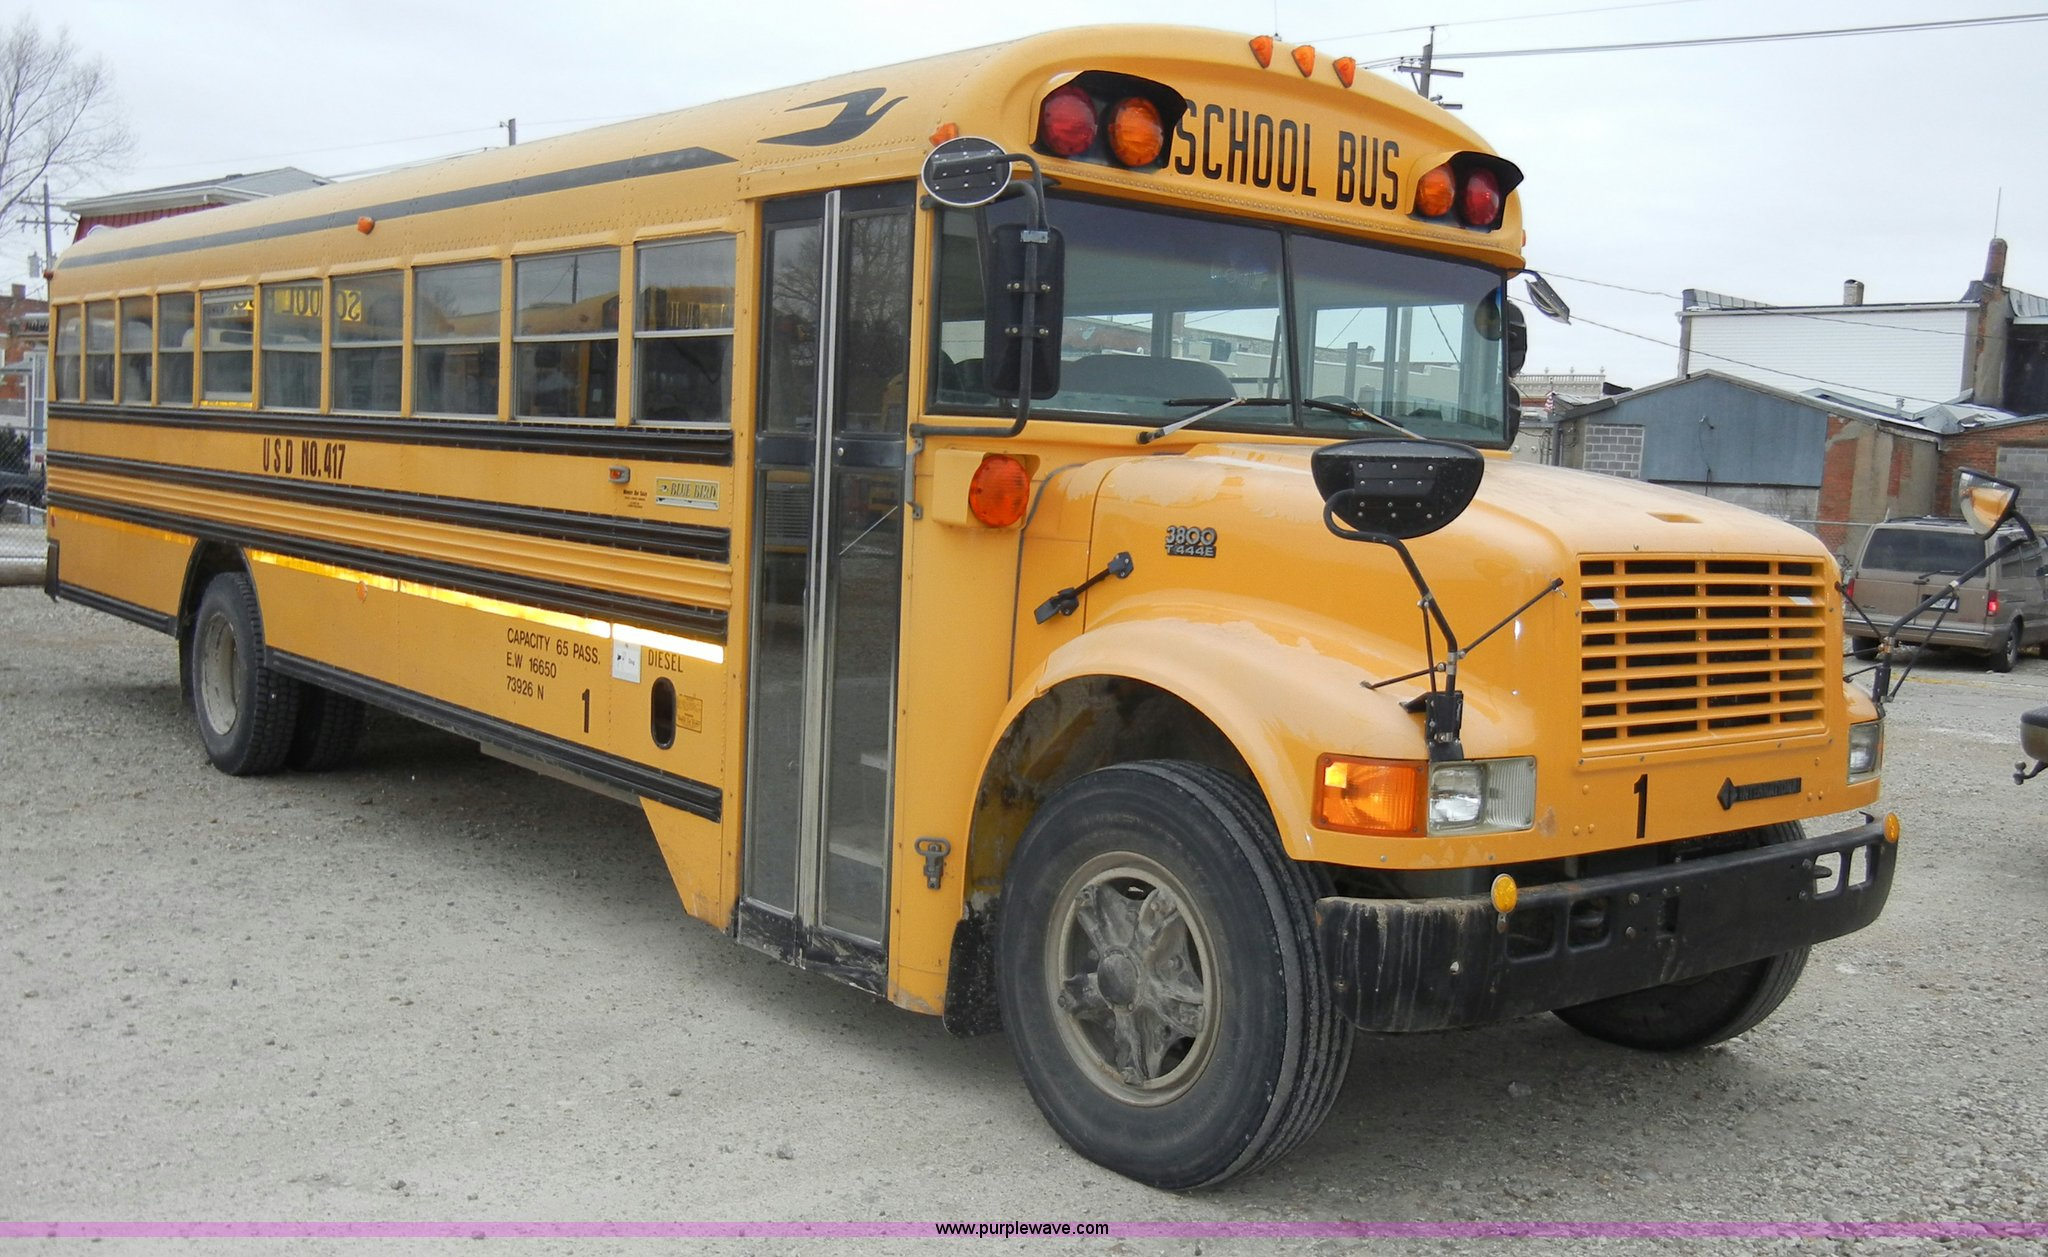 ... 1995 International Bluebird 3800 school bus Full size in new window ...